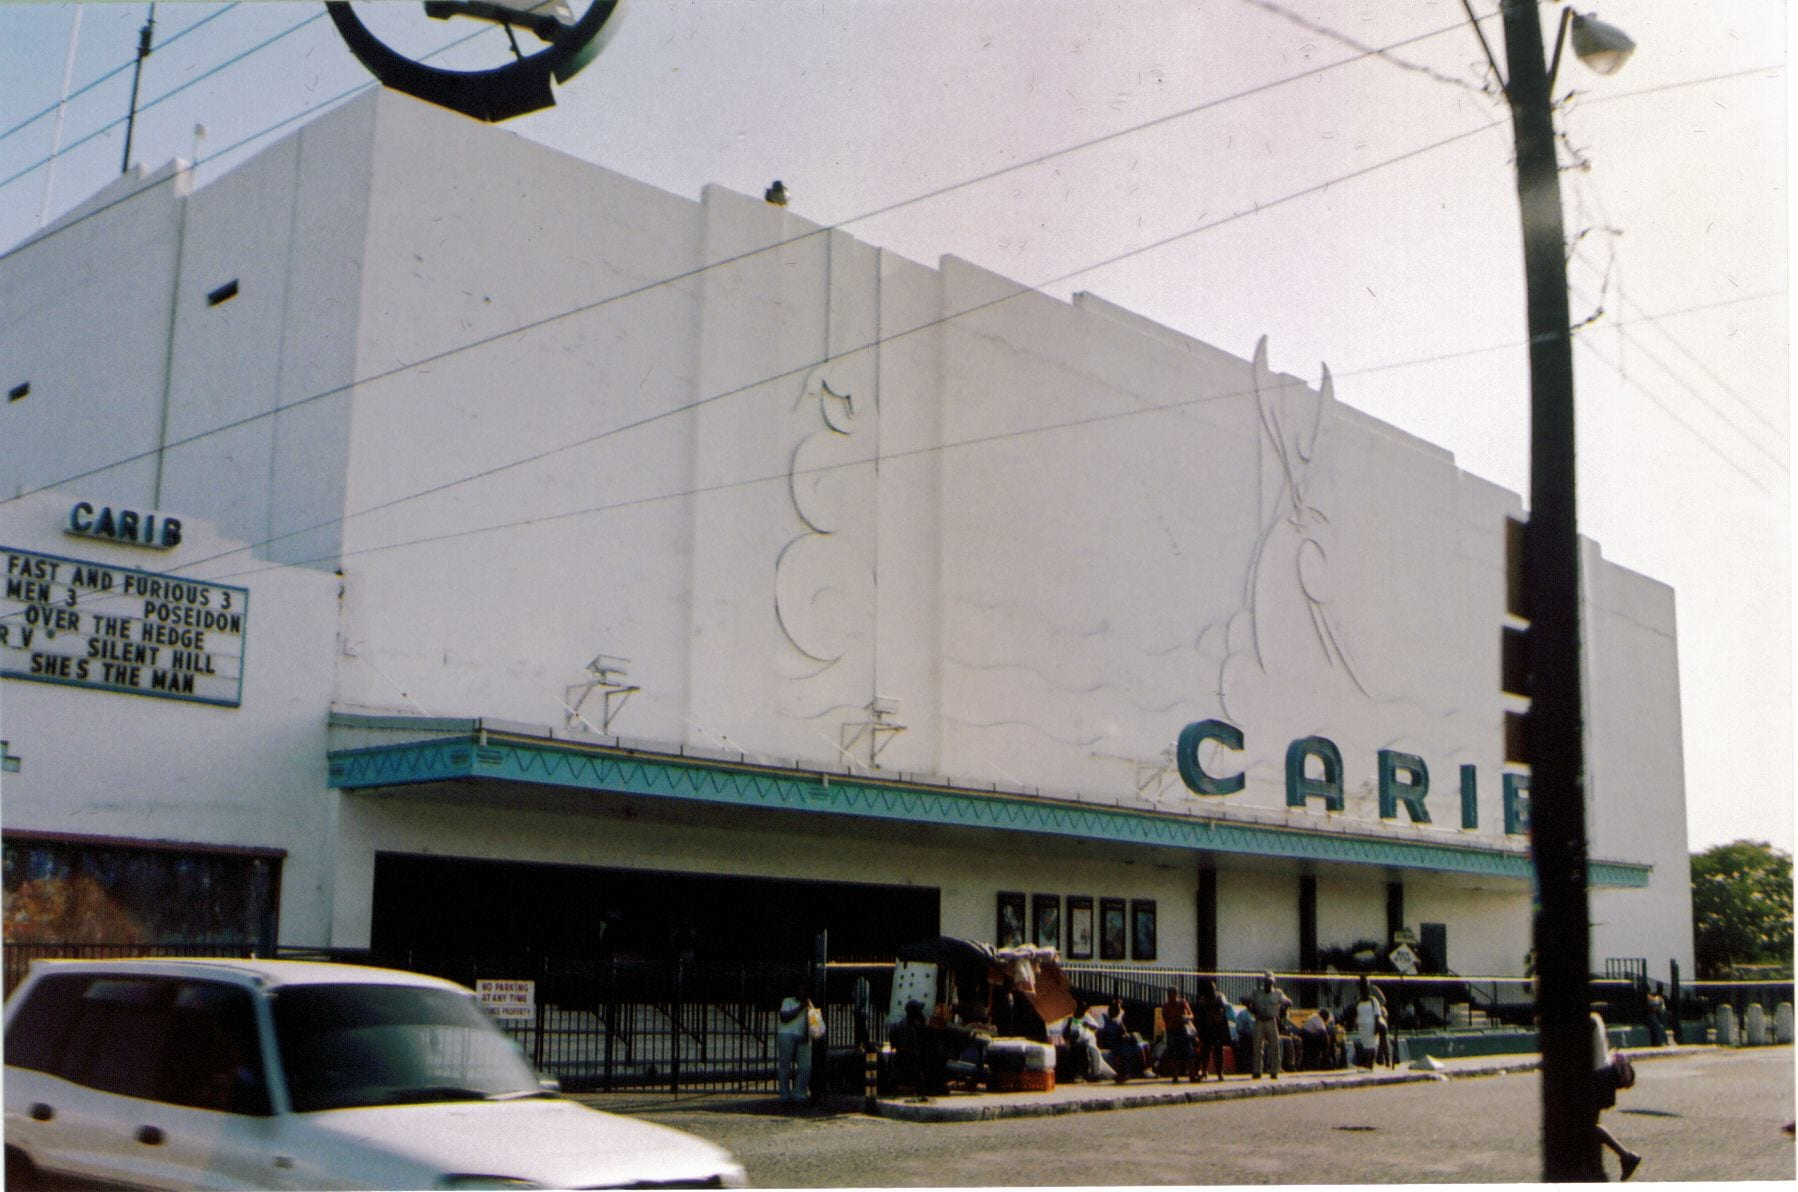 Carib movie theater, Kingston, Jamaica